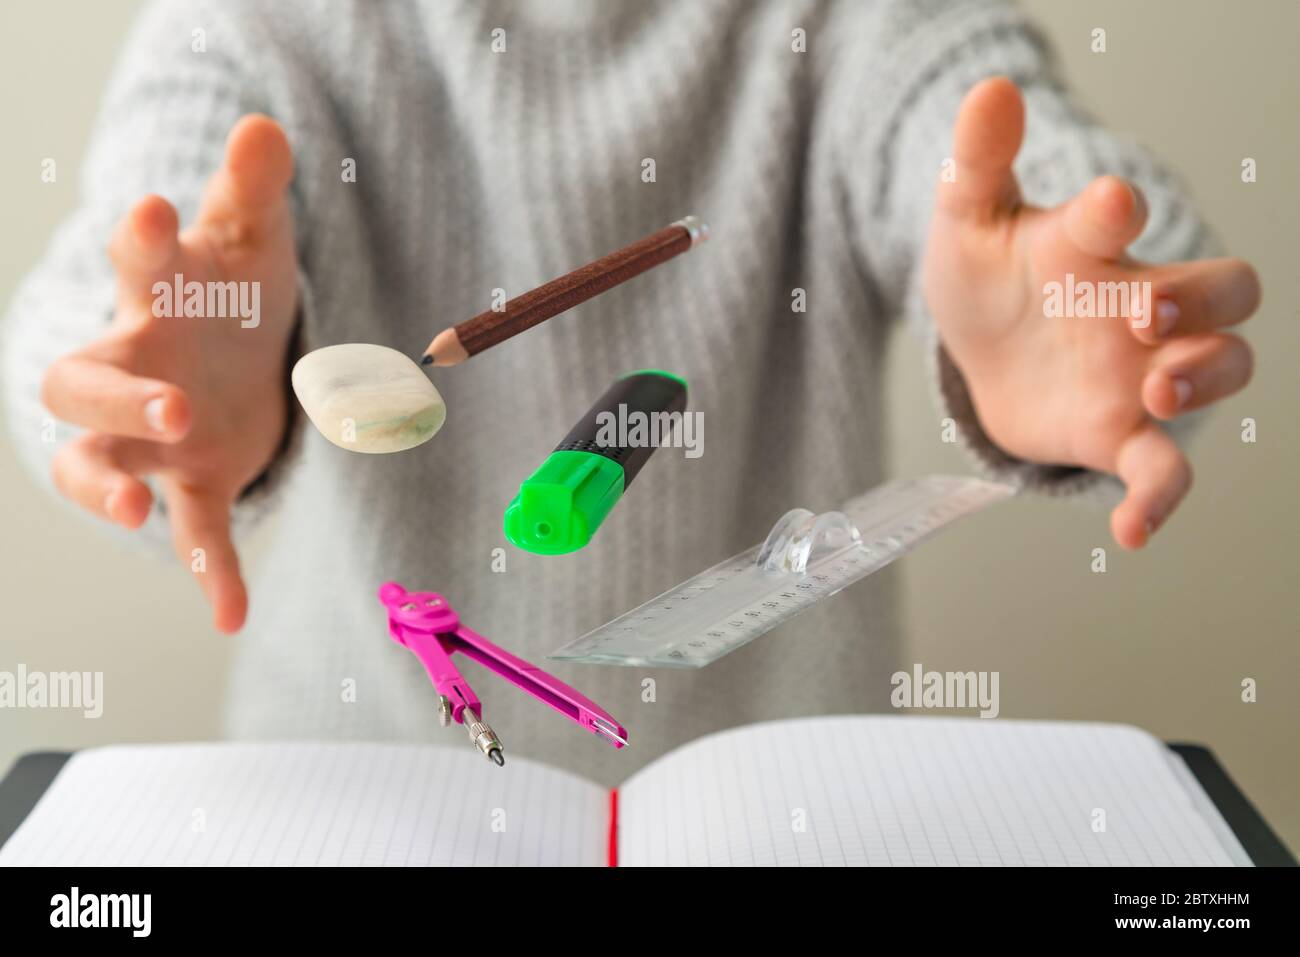 Levitating school supplies for math - notebook, pen, ruler, pencil, divider and eraser levitating between student hands. Concept of education and crea Stock Photo